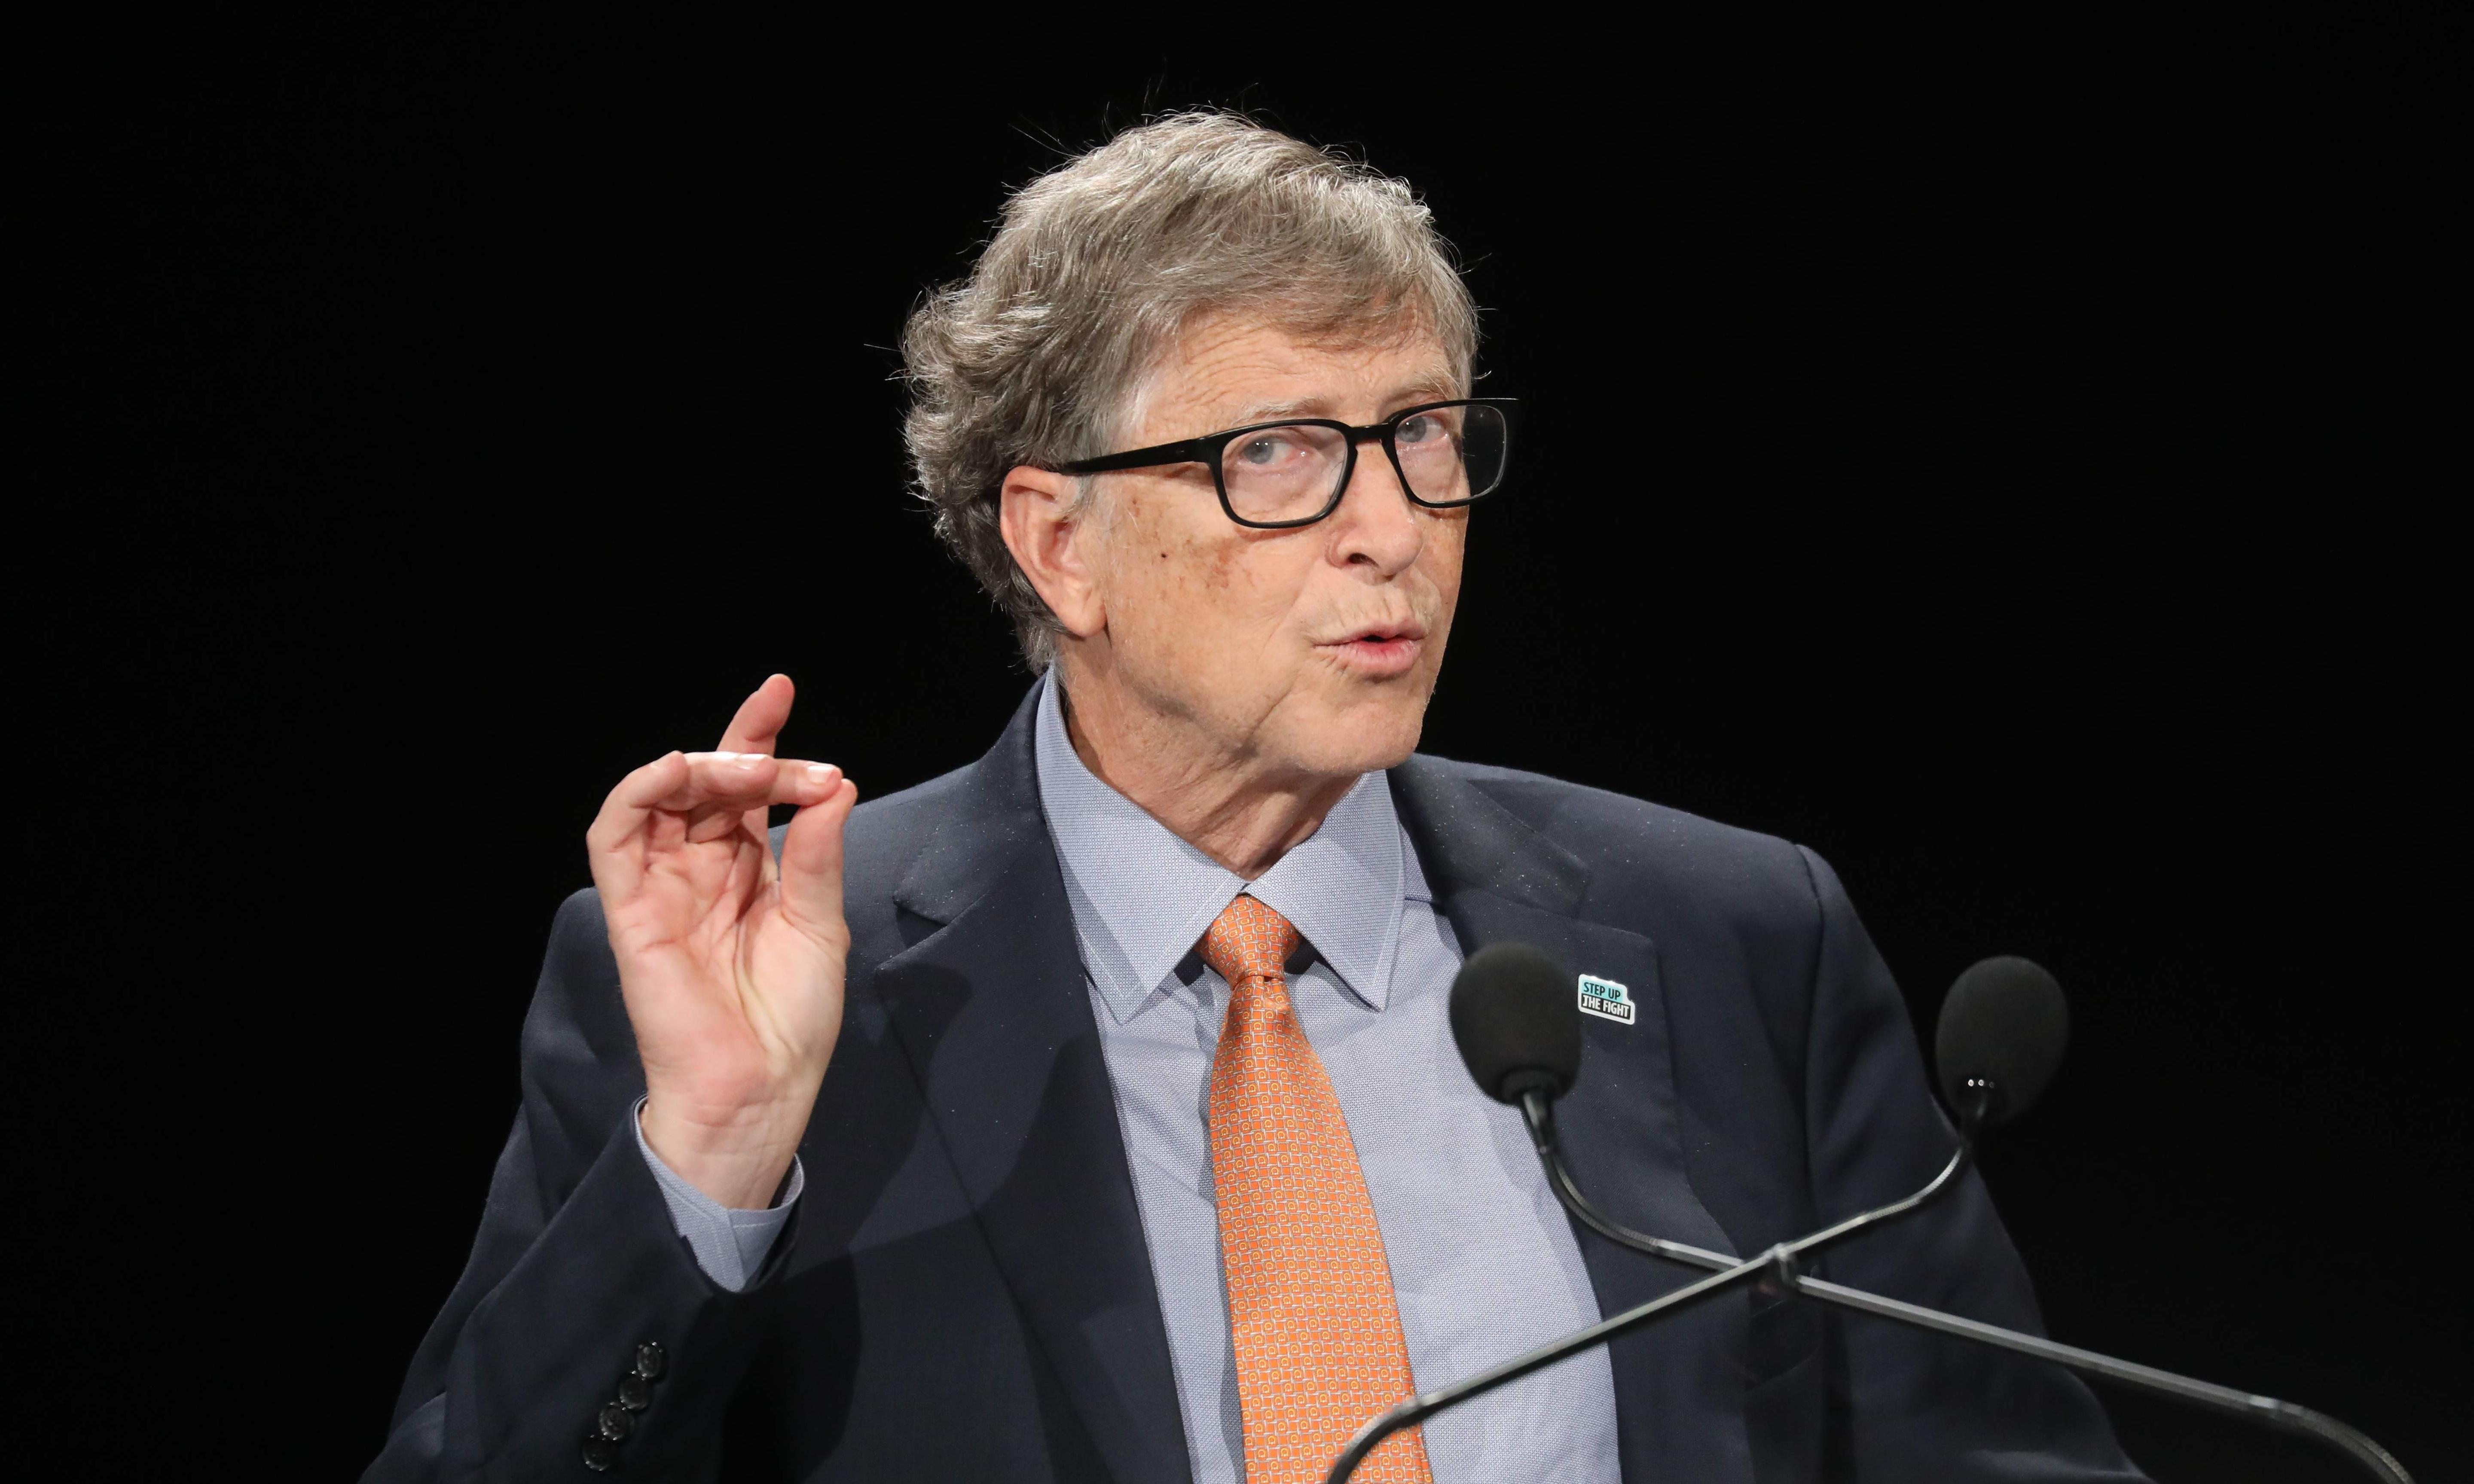 Striking sanitation workers decry low pay as company makes millions for Bill Gates